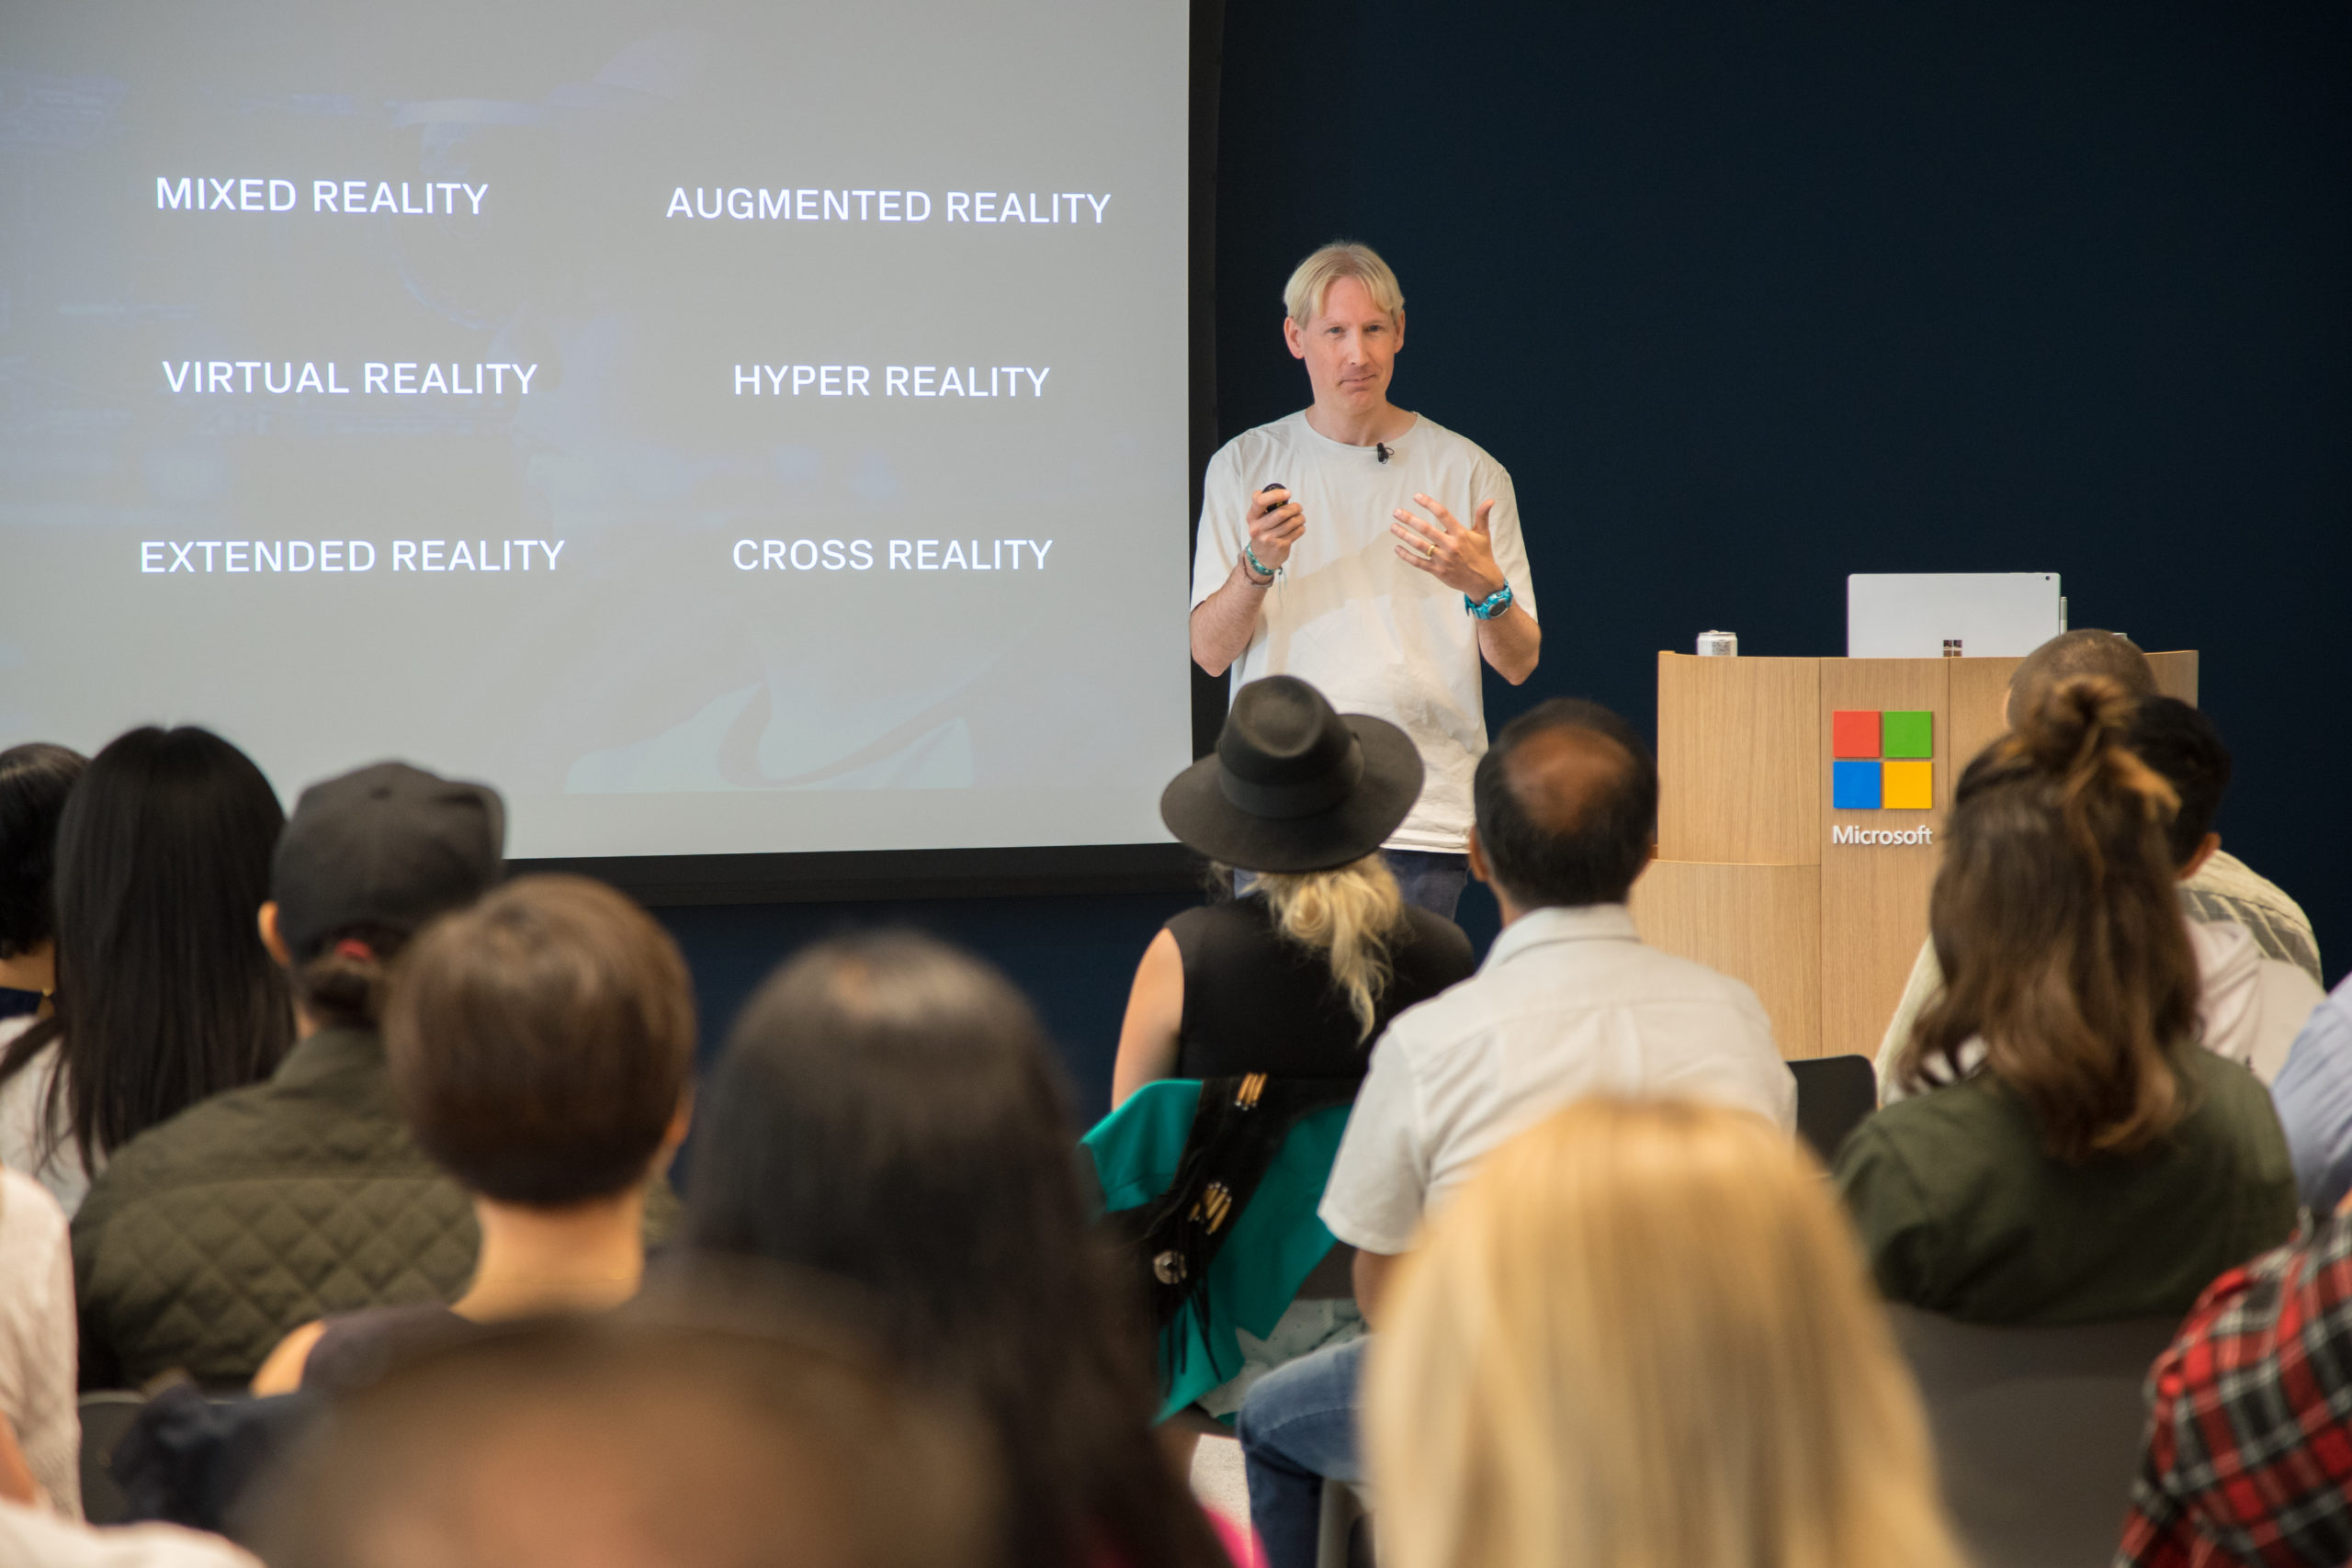 Matthew drinkwater guest speaking at Microsoft Store, Fashion Innovation Agency